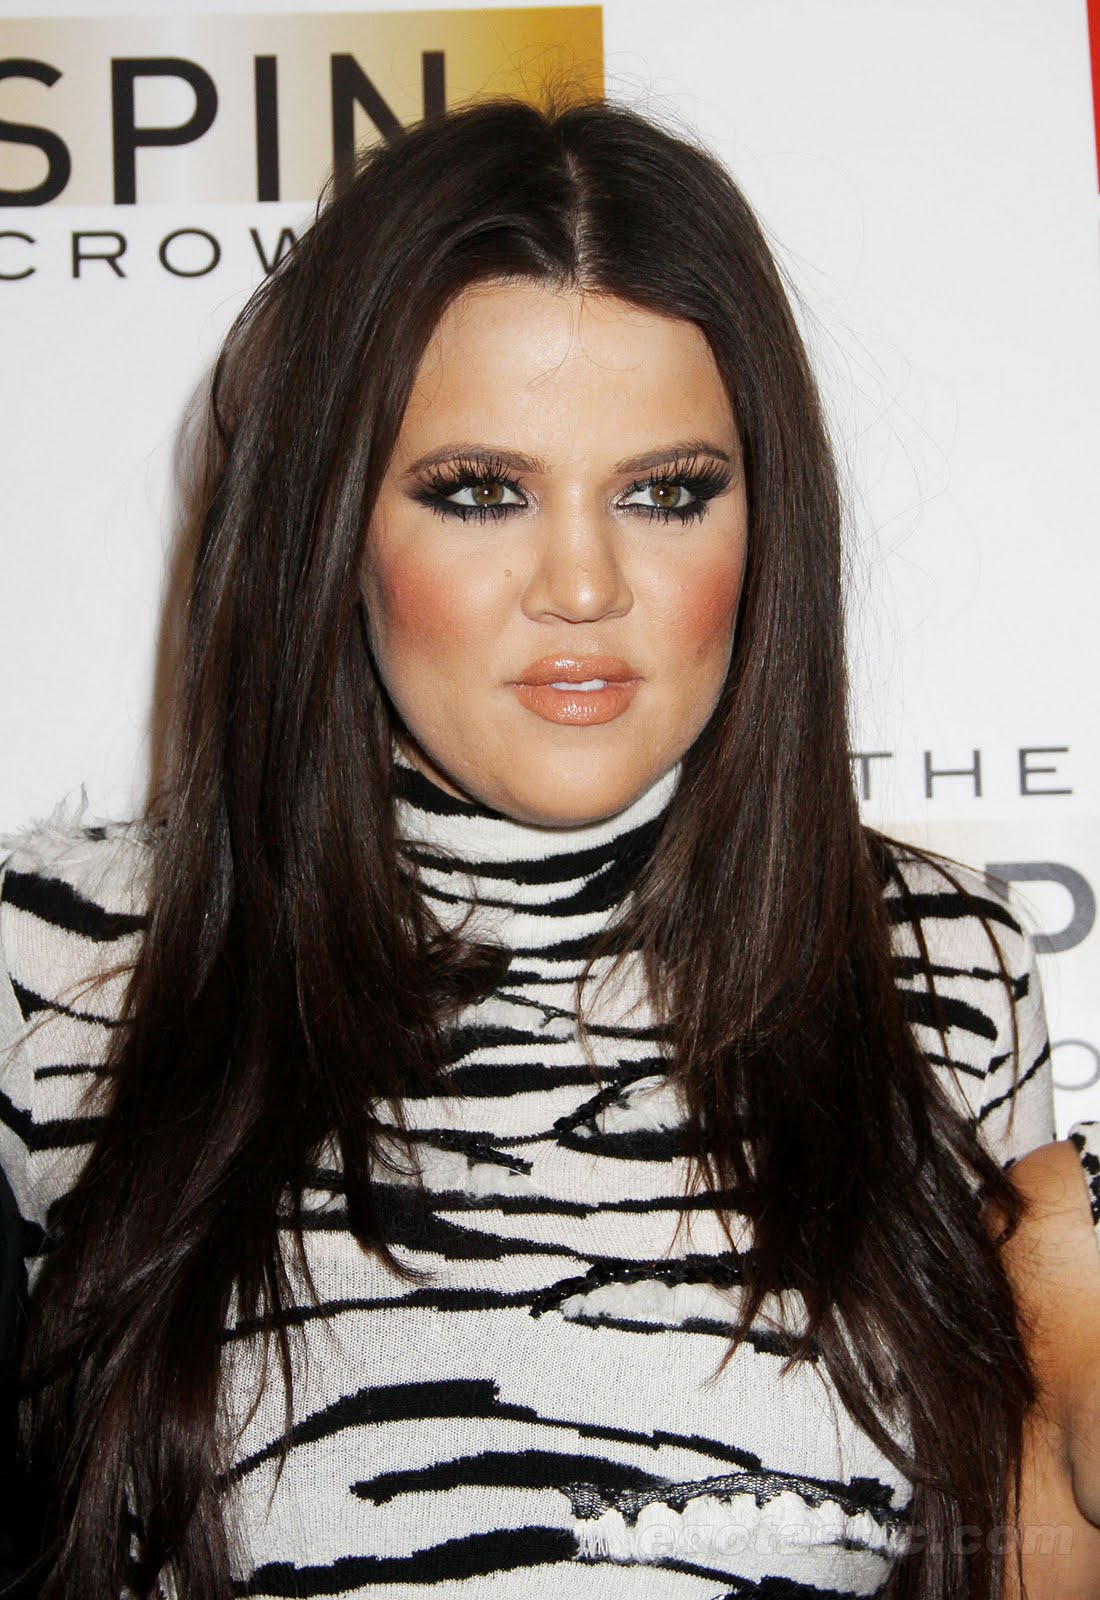 Rob Kardashian Girlfriend Khloe Kardashian Hairstyles